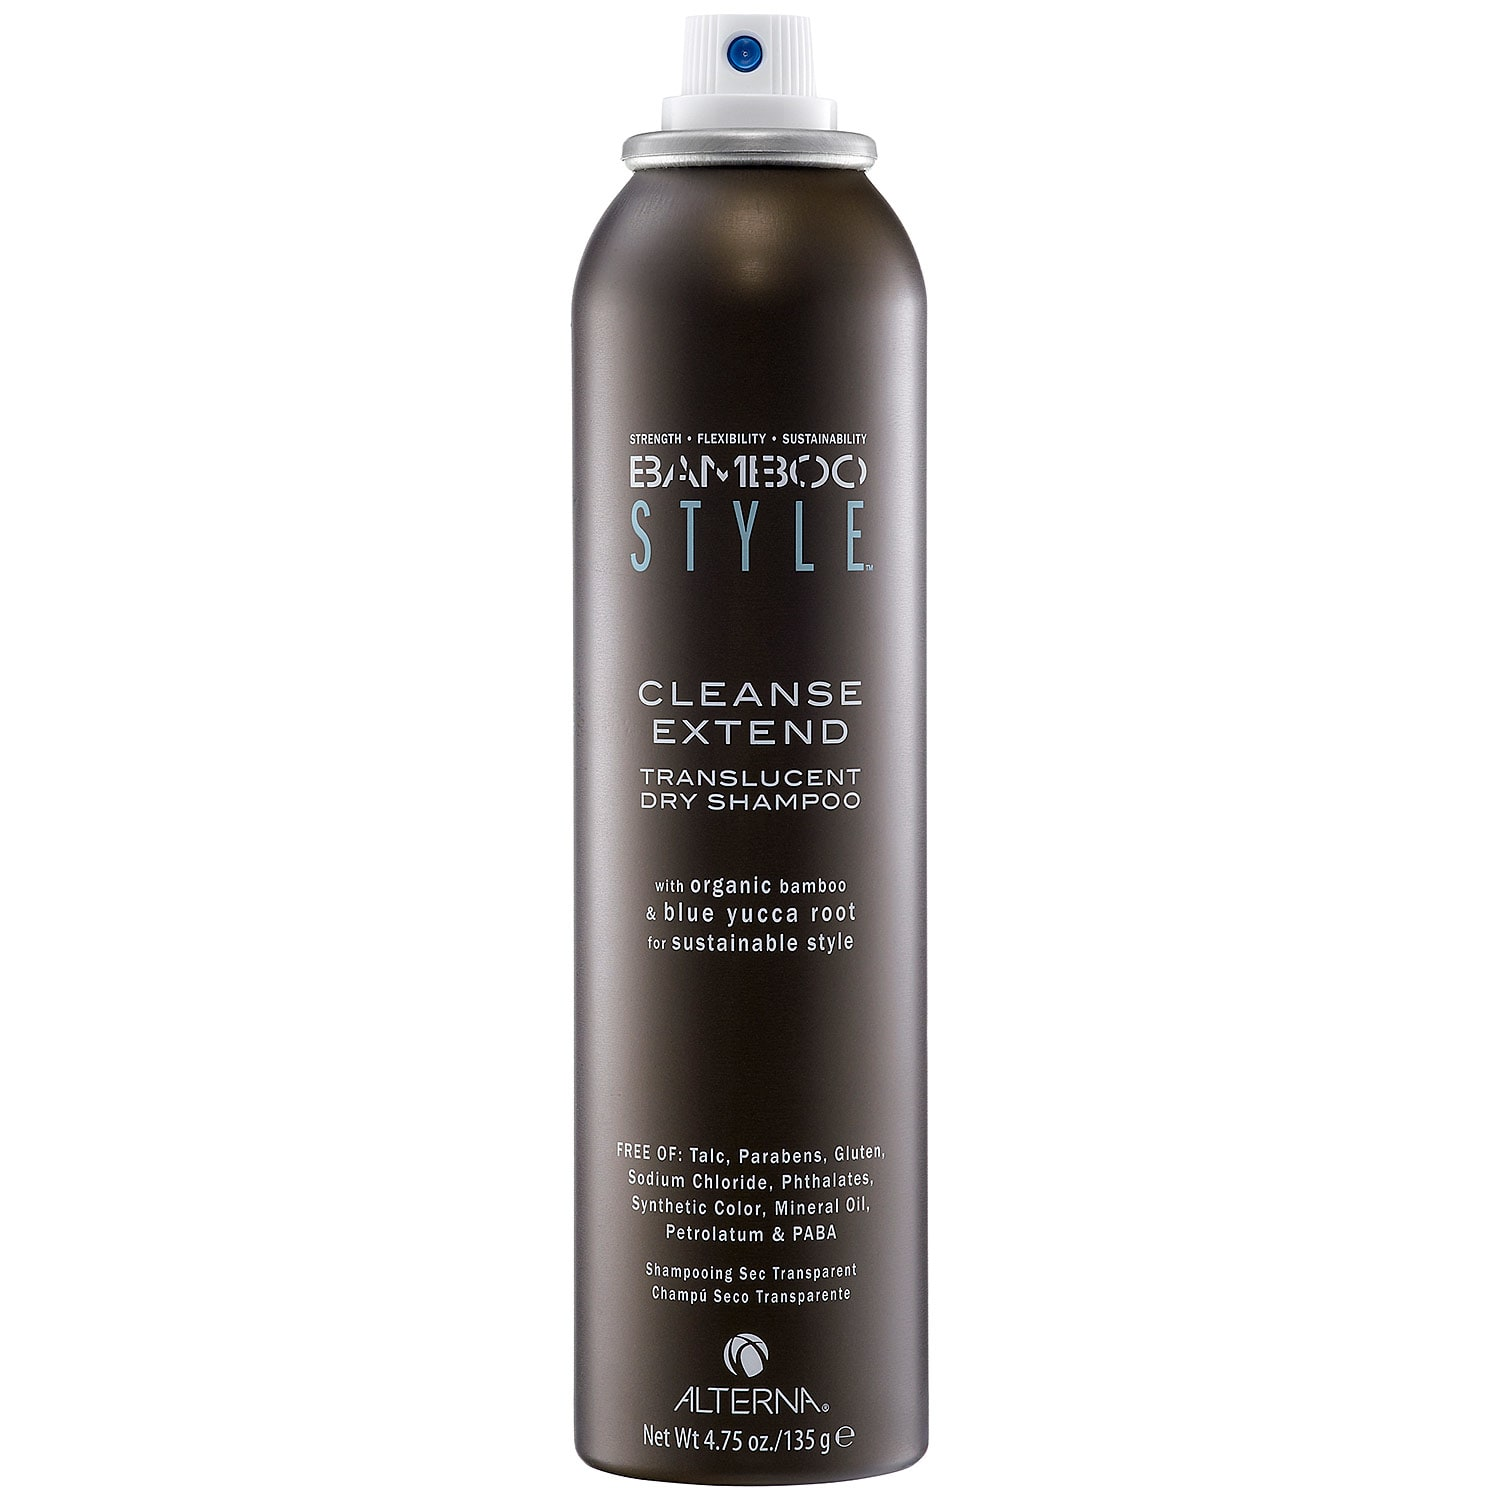 Cleanse Extend Translucent Dry Shampoo in Bamboo Leaf Scent